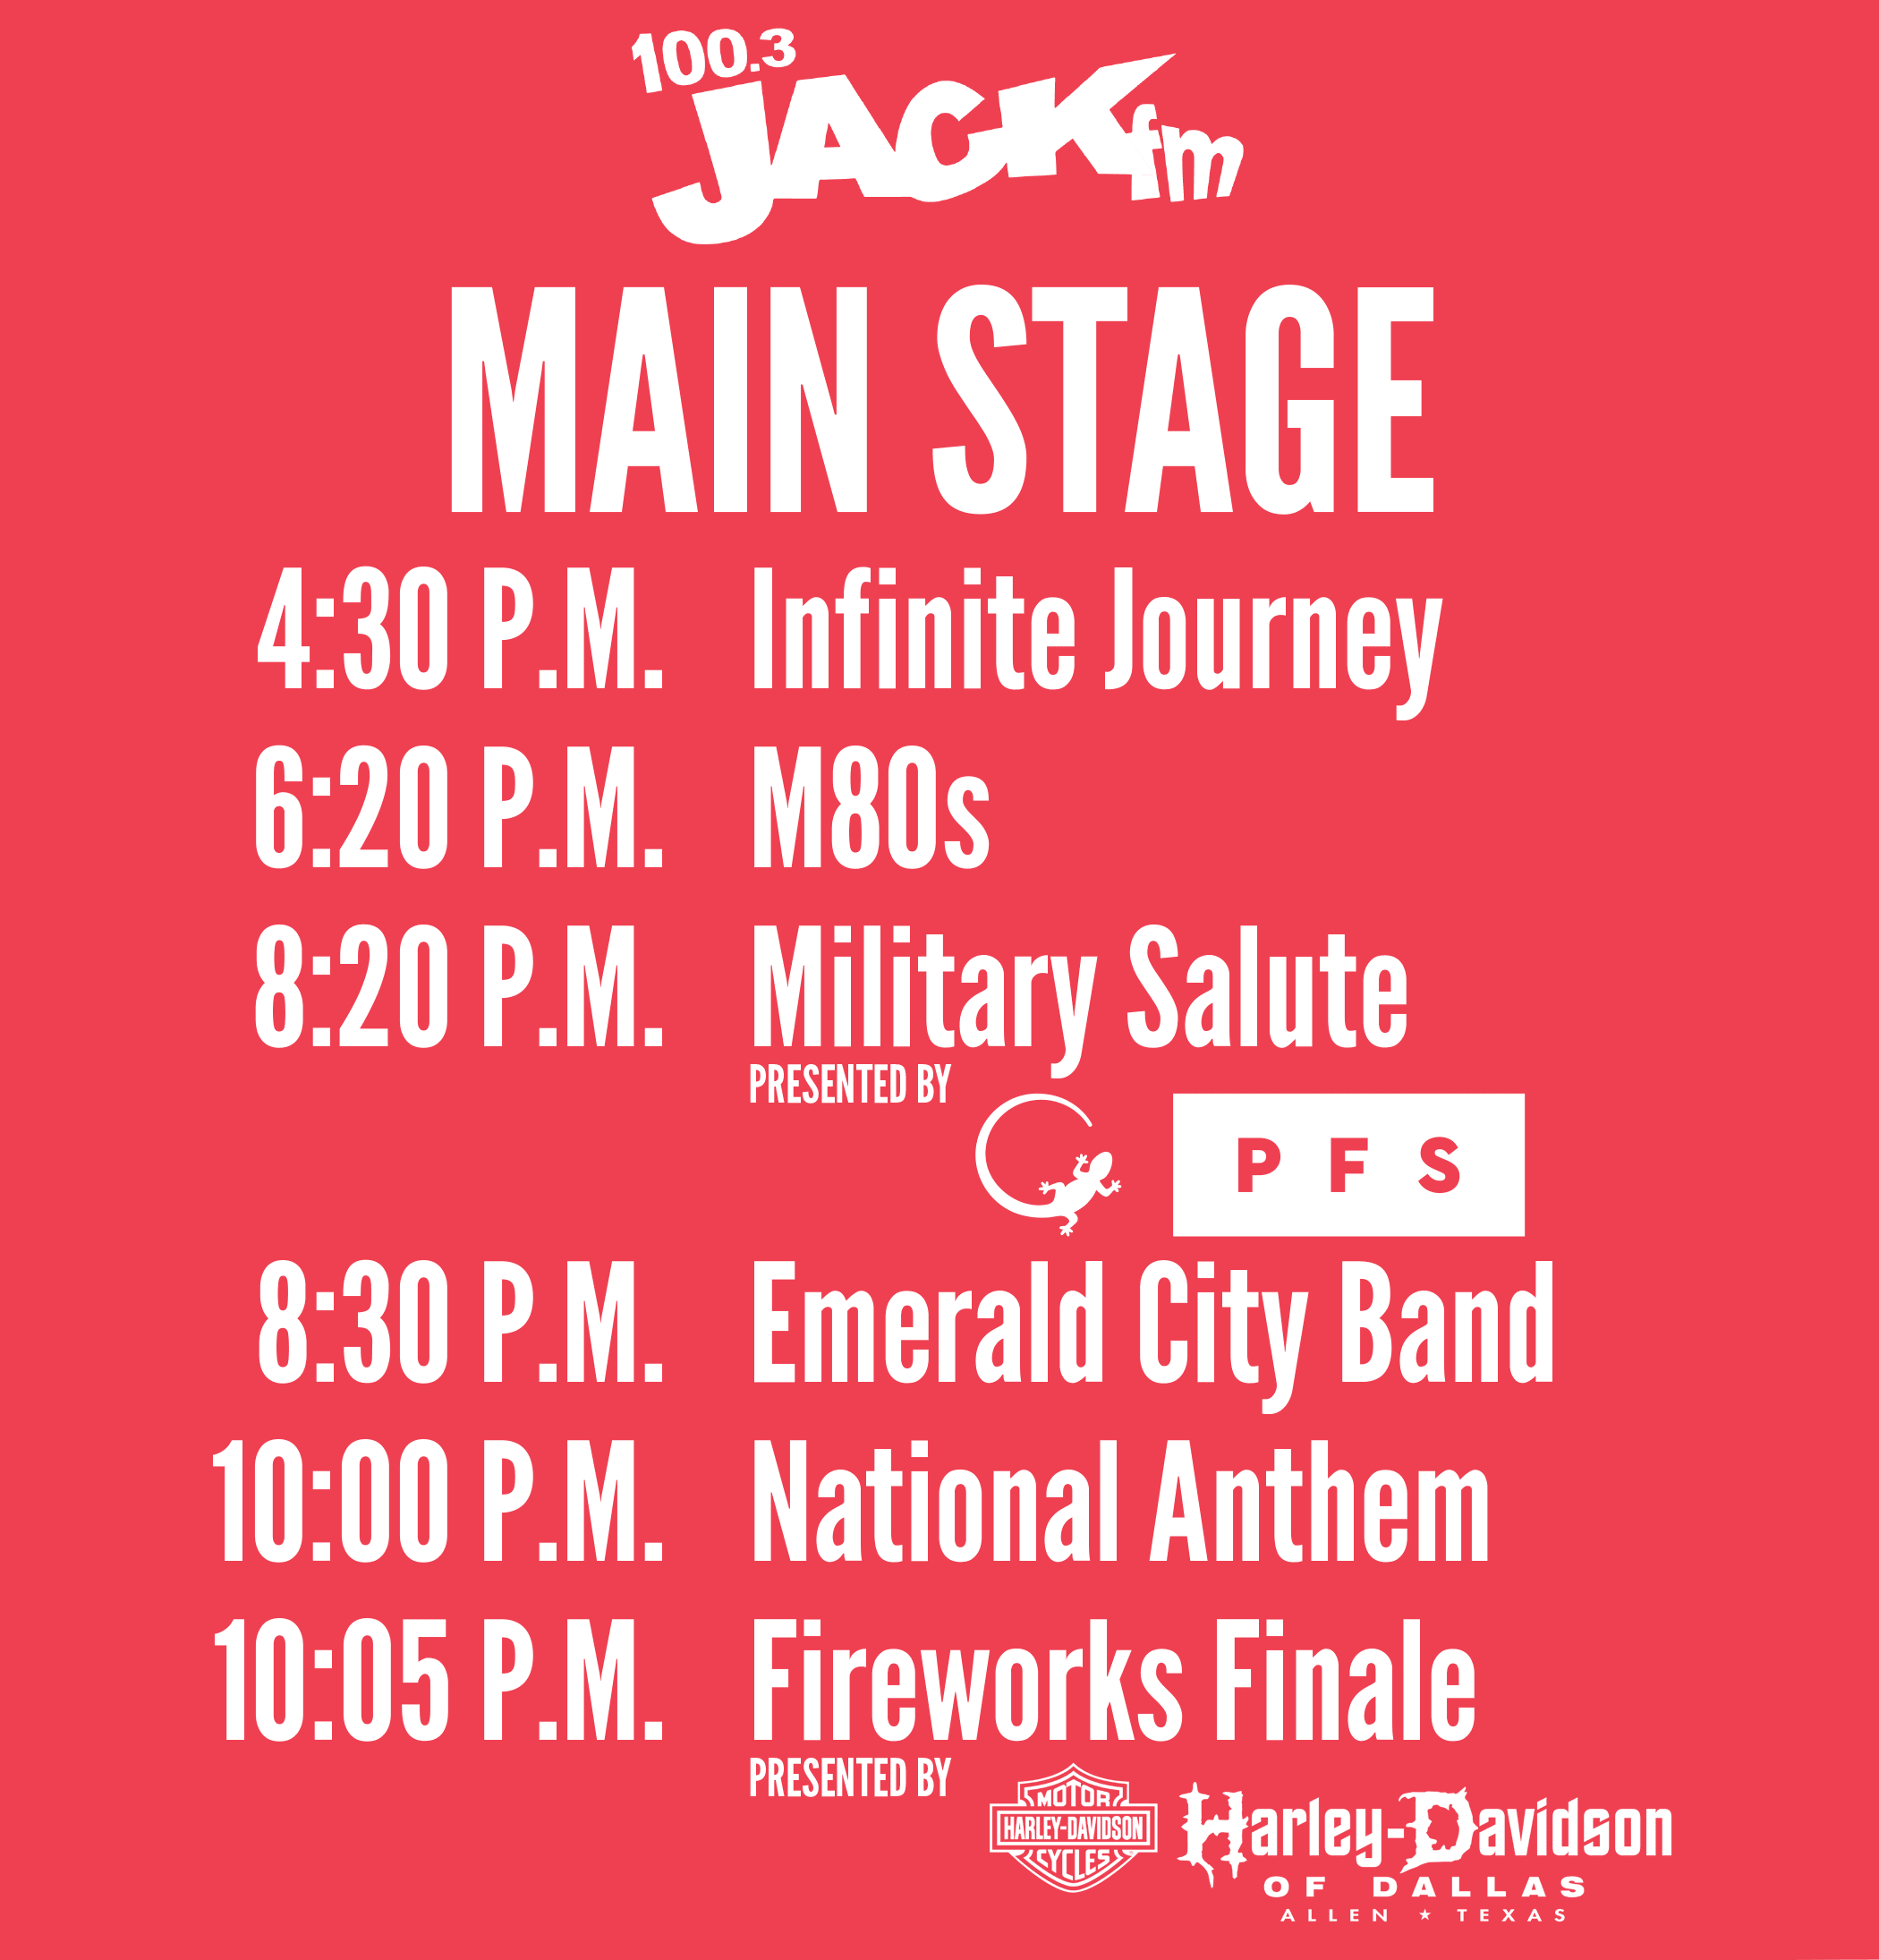 2018 Main Stage Schedule